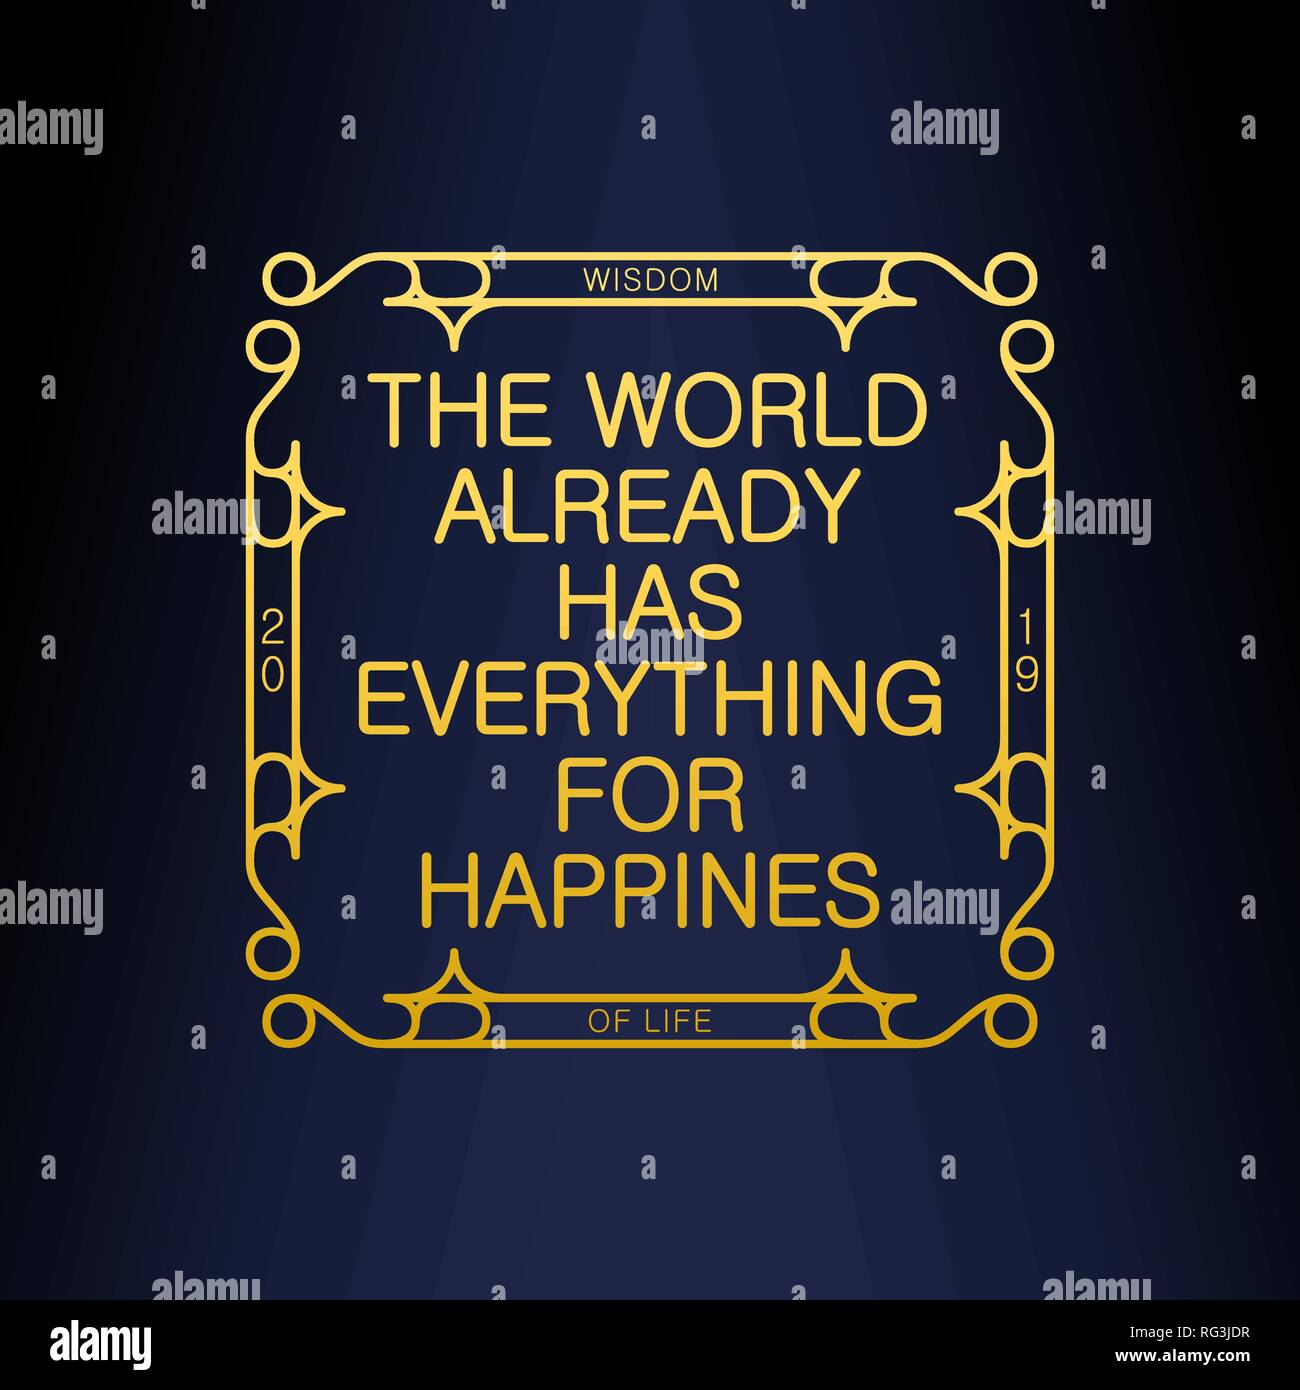 The World Already Has Everything For Happines. Wisdom. Stylish Art Deco design. Vector illustration - Stock Vector